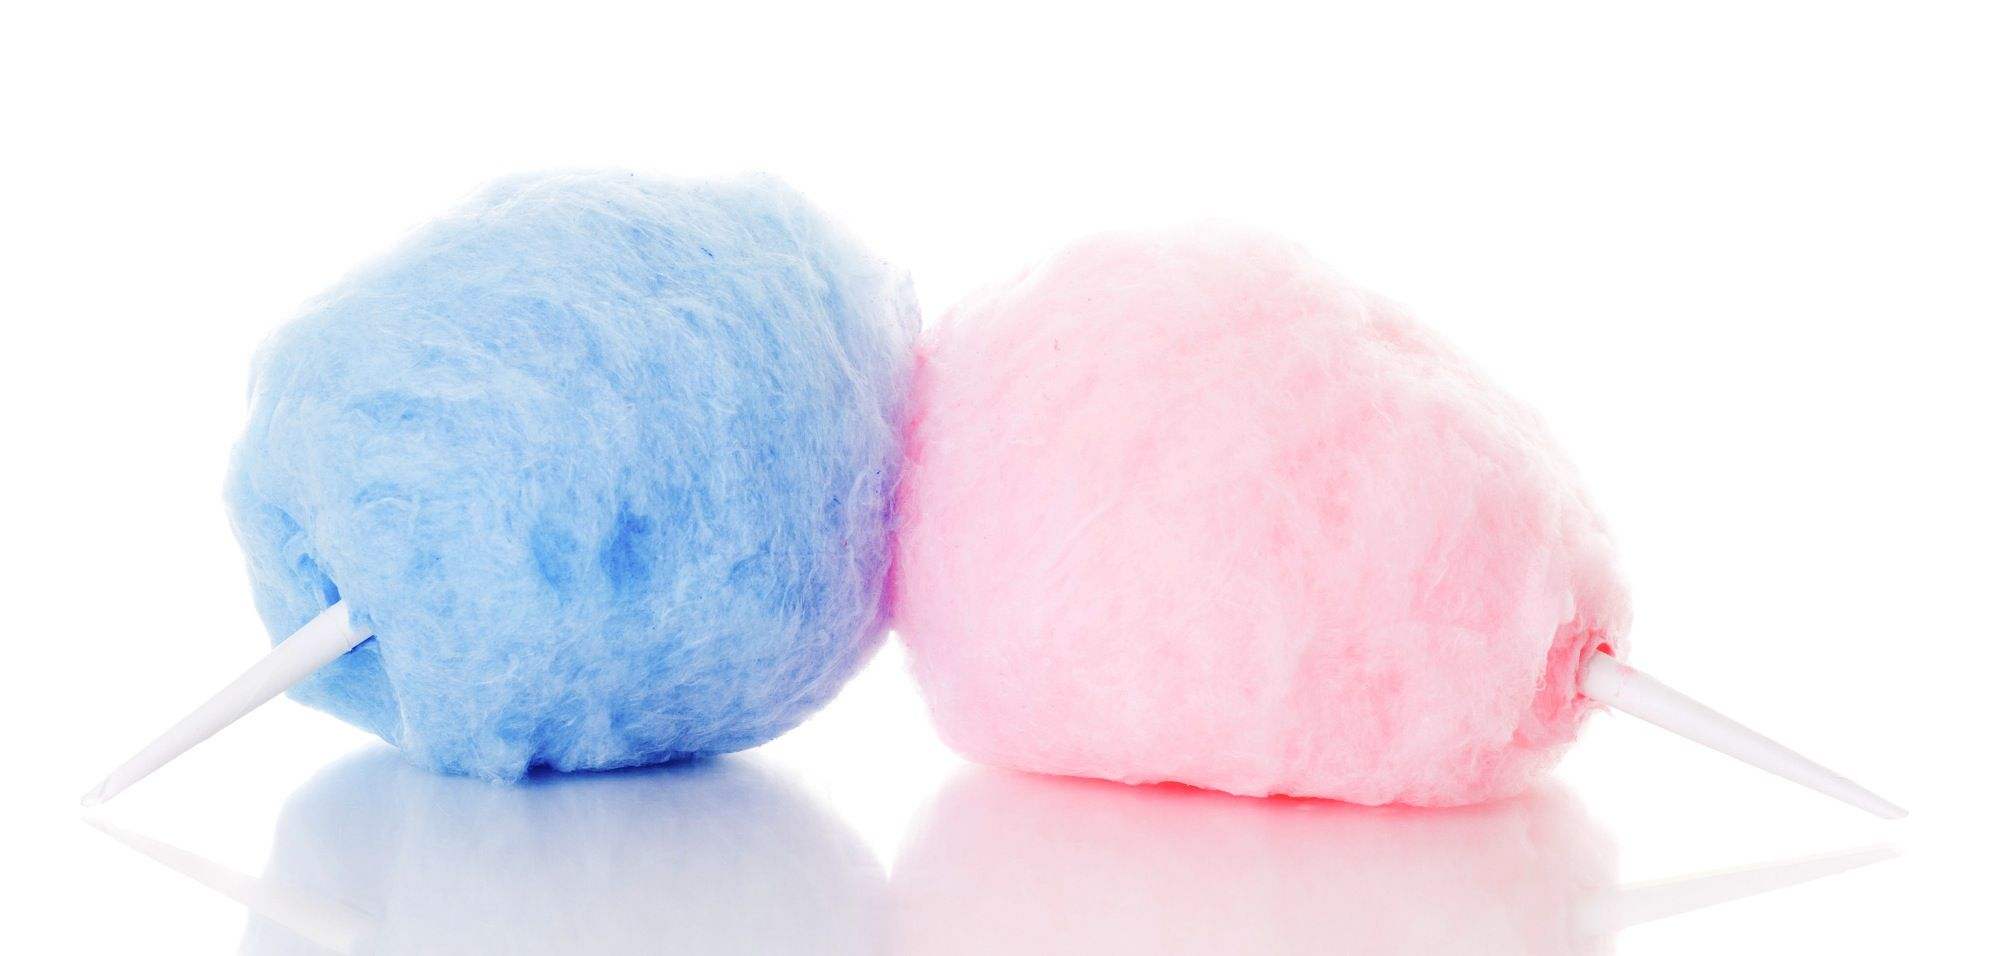 Pin by Sheener Neo on ‿ Cotton Candy ‿ Homemade cotton